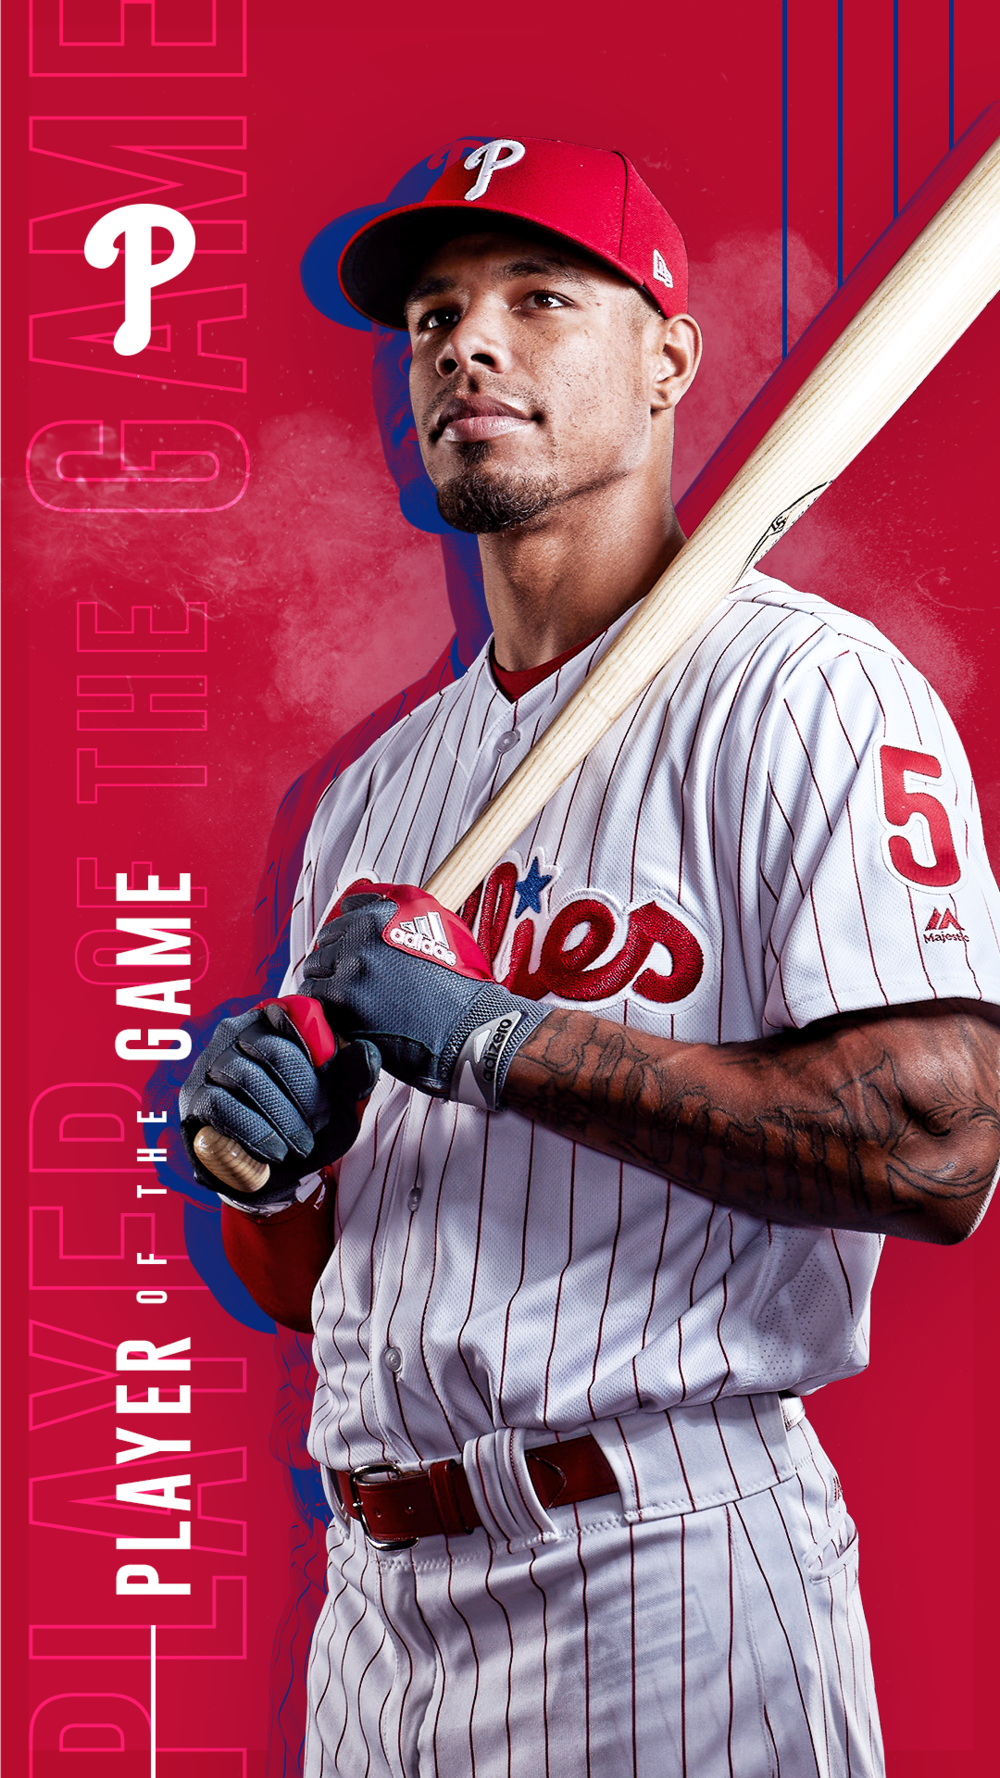 Philadelphia-Phillies_Instagram_Intro_Play-Of-The-Game-Highlight_red_1920x1080 (1).png